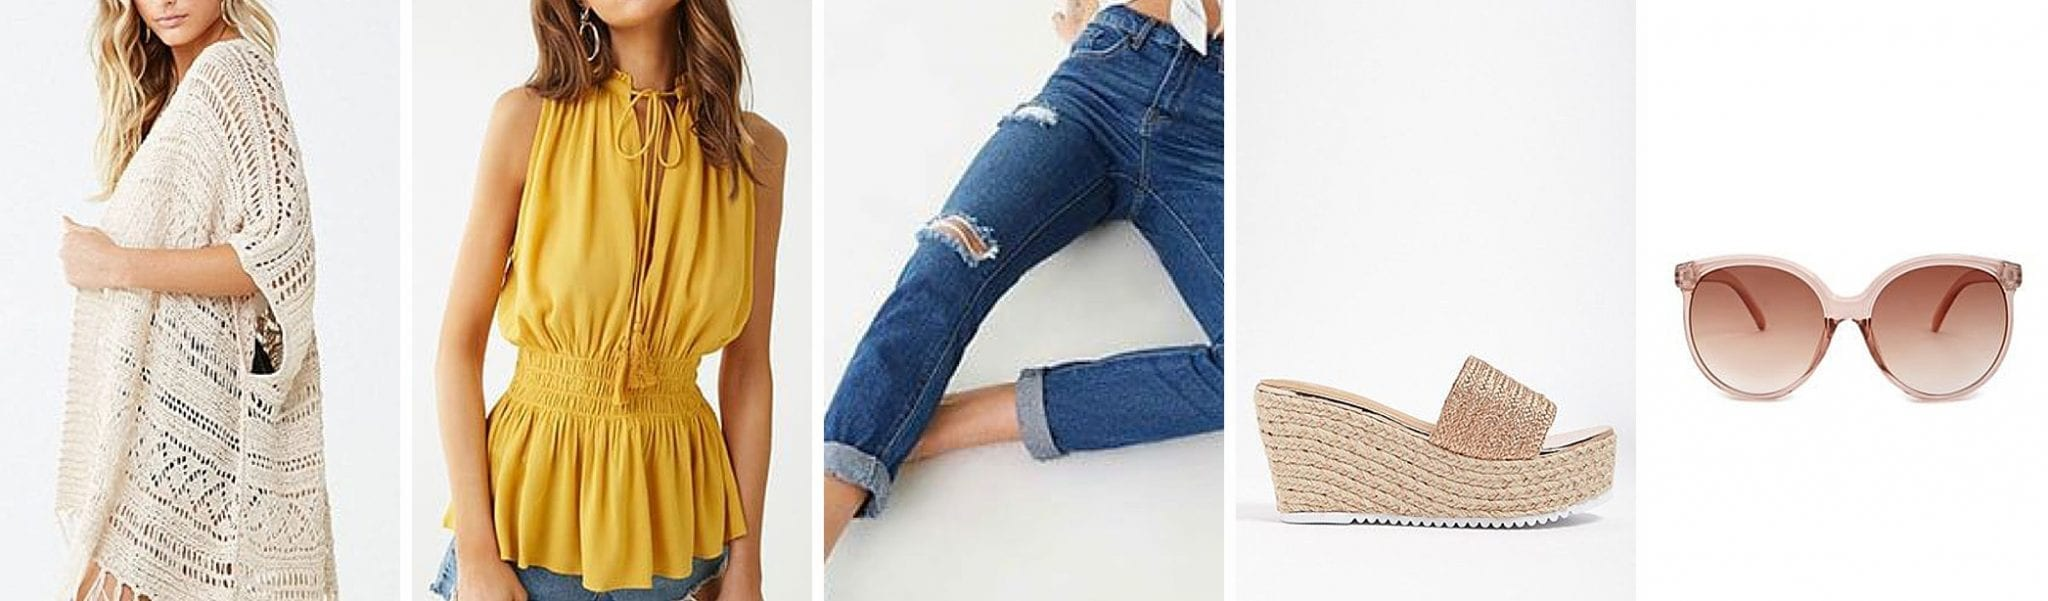 packing-list, packing-essentials, spring-styles